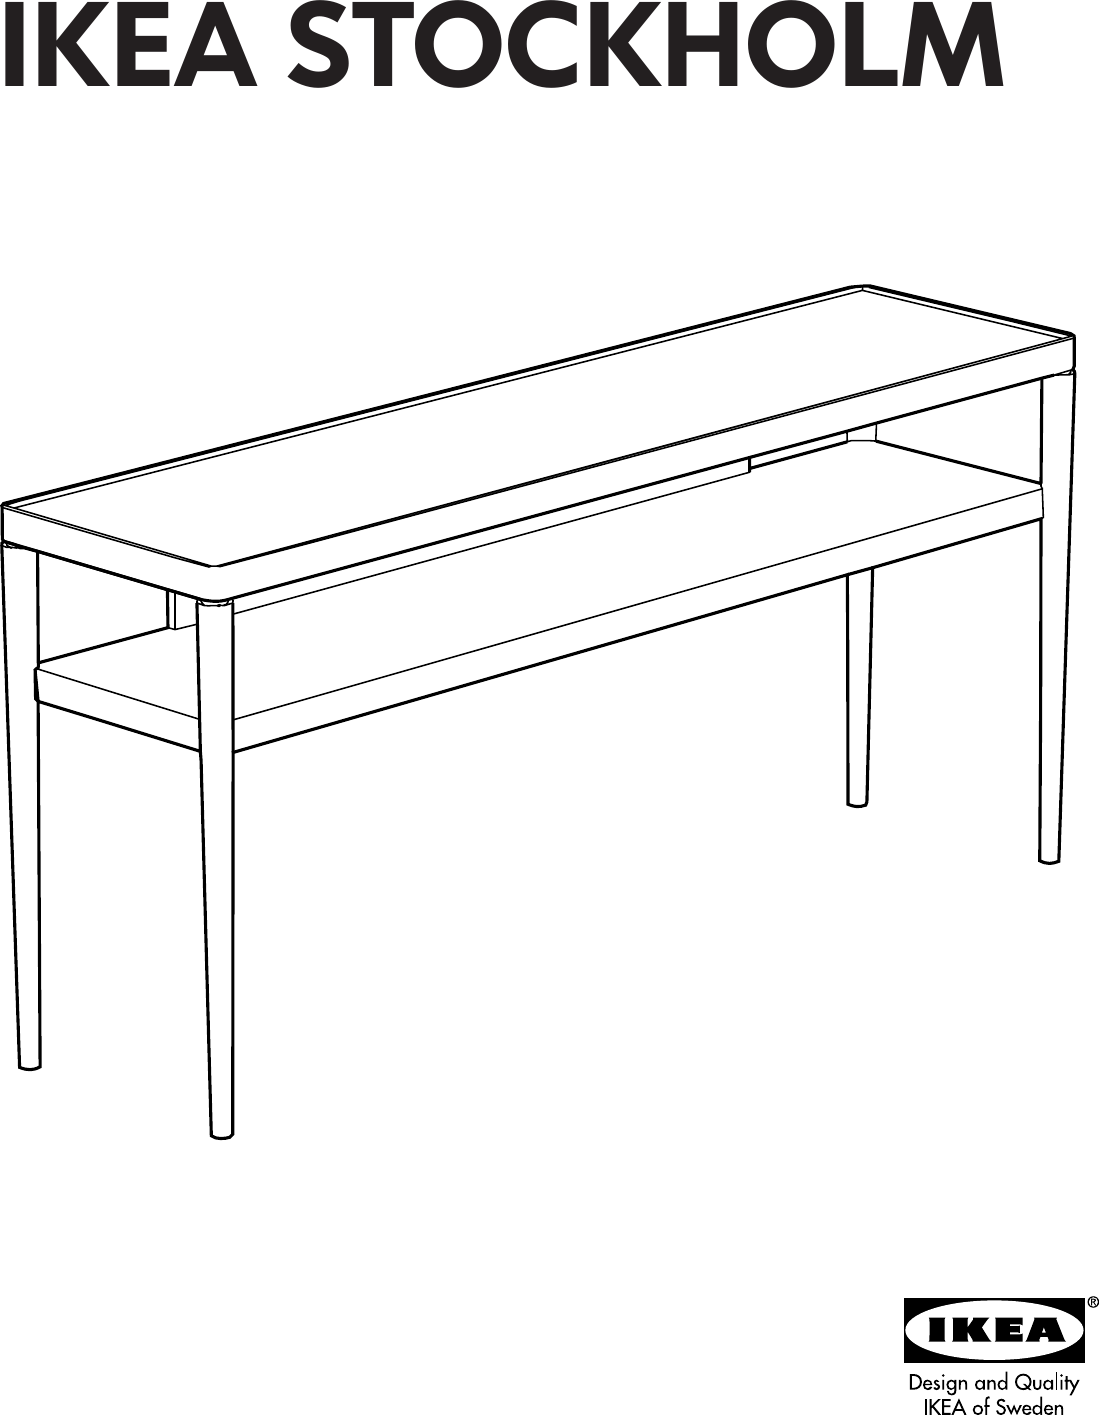 Remarkable Ikea Stockholm Sofa Table 59X15 Assembly Instruction Interior Design Ideas Ghosoteloinfo